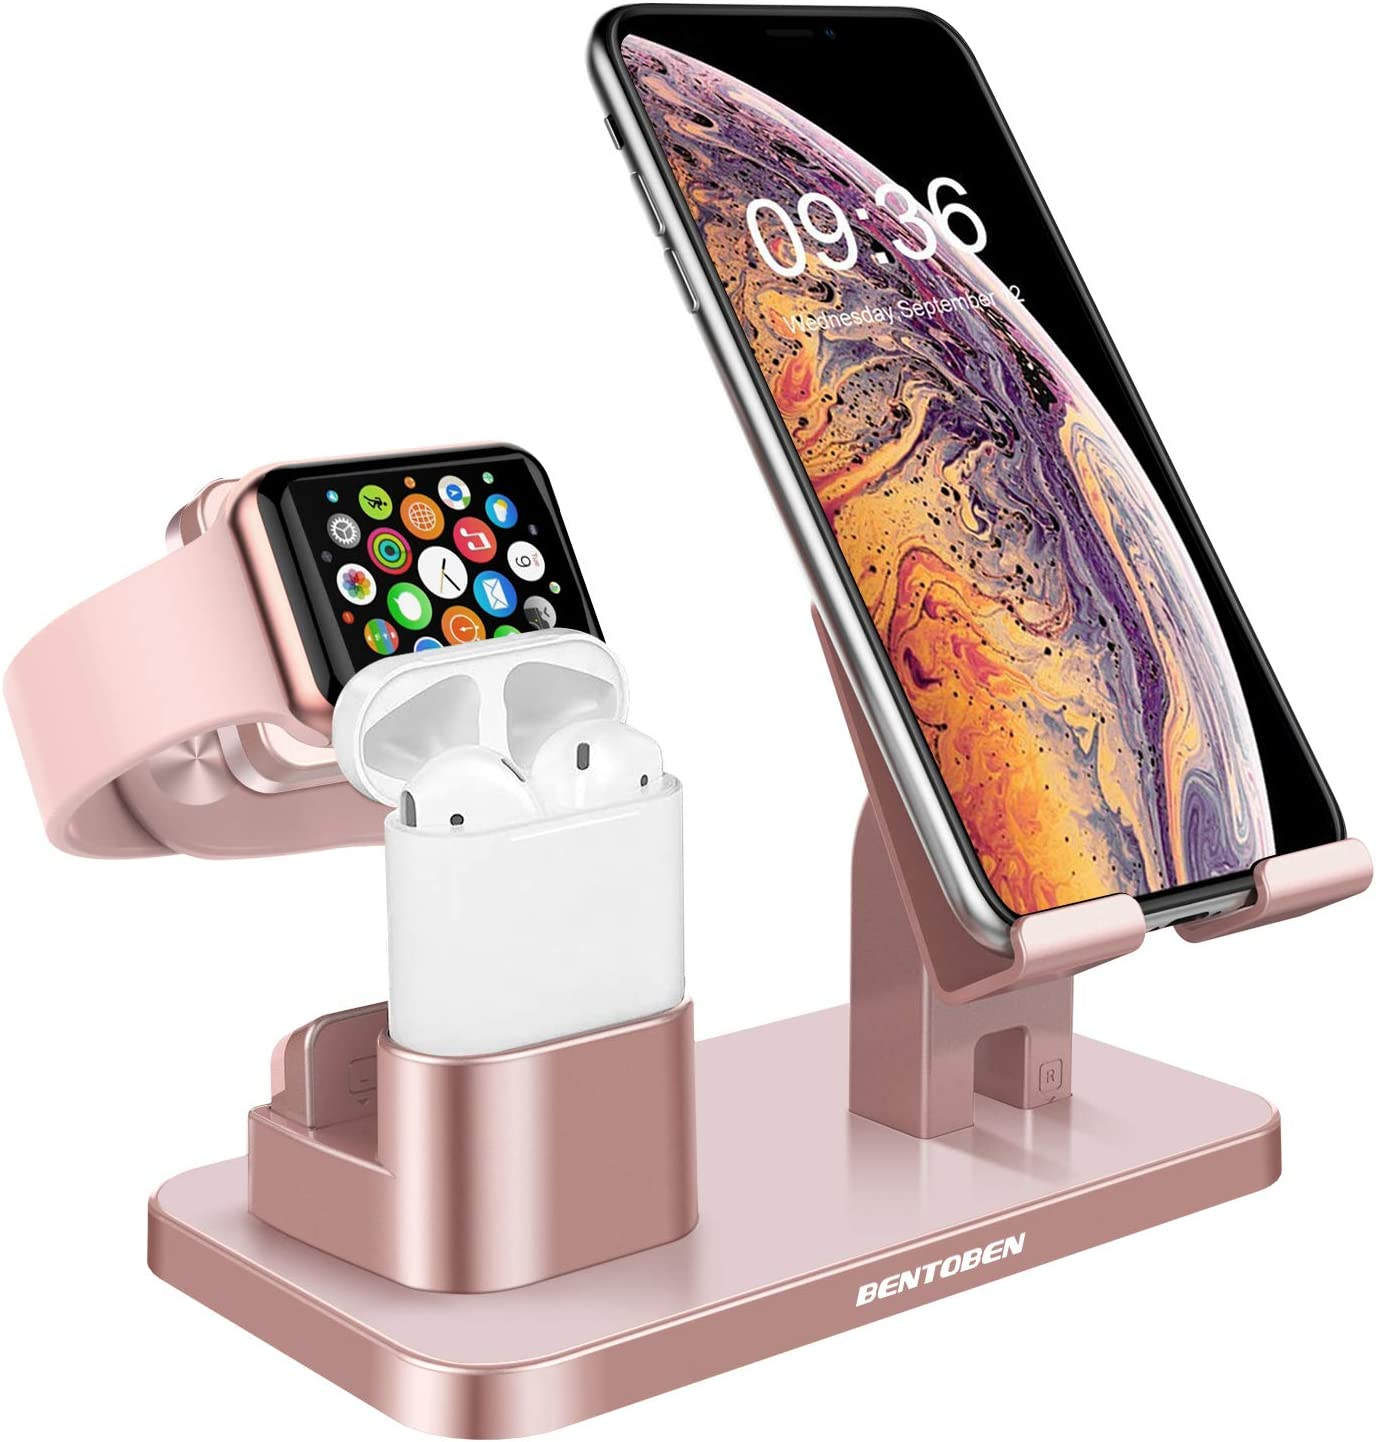 Amazon Com Bentoben 3 In 1 Charging Stand Universal Charging Dock Station For Airpods 2 1 Apple Watch Series 6 5 4 3 2 1 Iphone 12 11 Pro Se 2020 Xs Max Xr X 8 7 6 Plus Android Smartphone